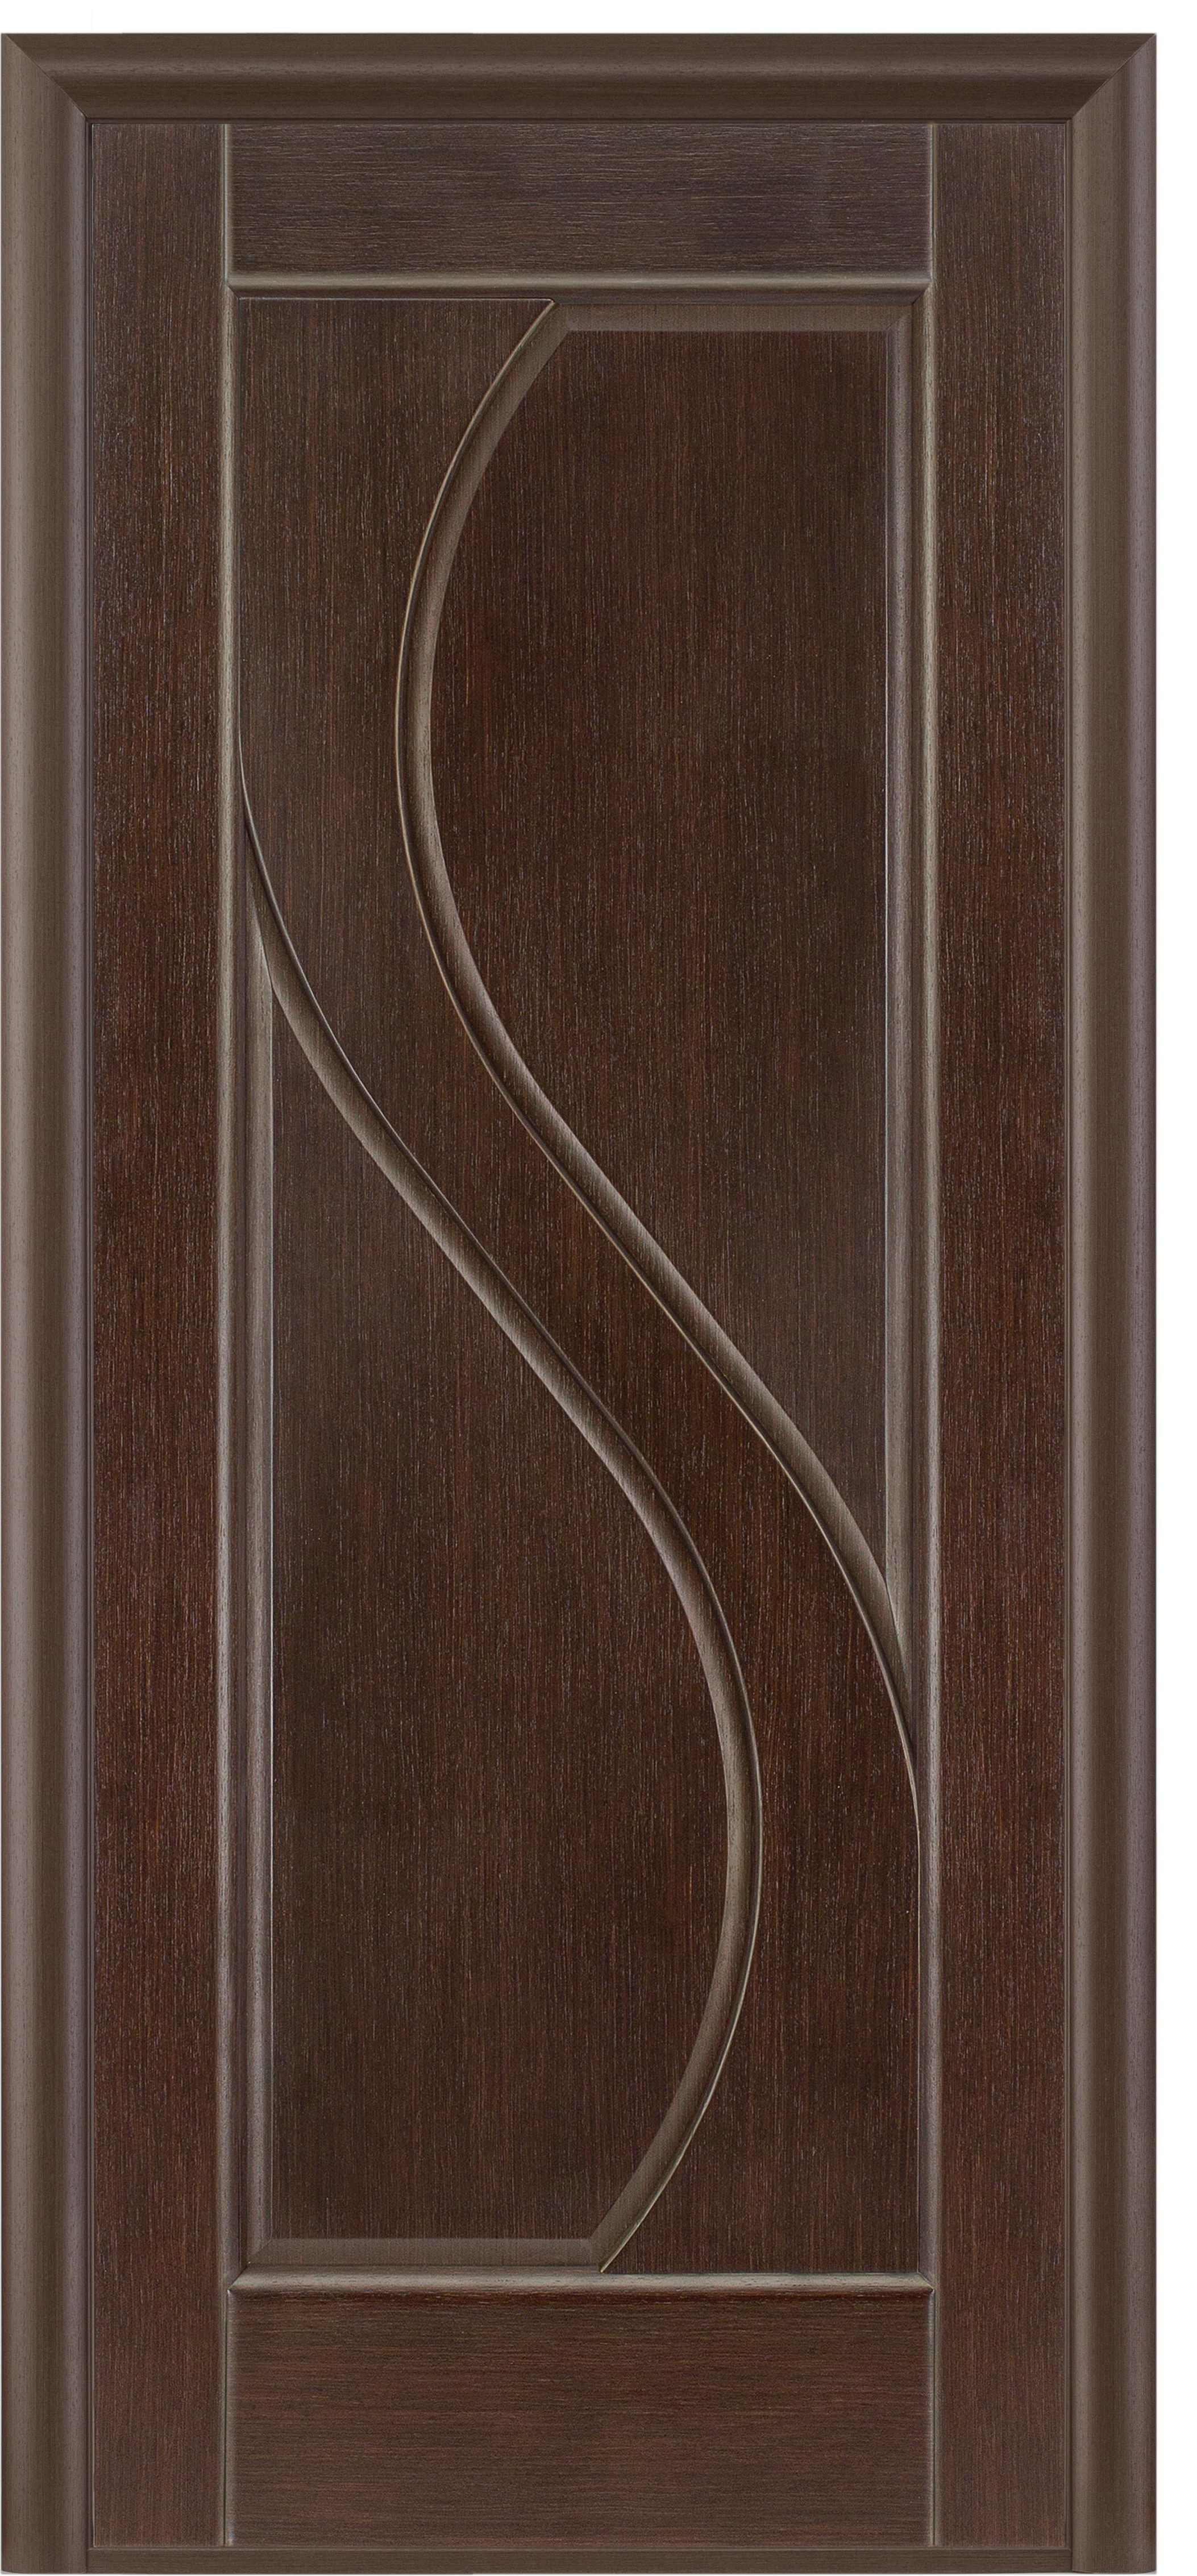 Massive dark wooden door in a modern style